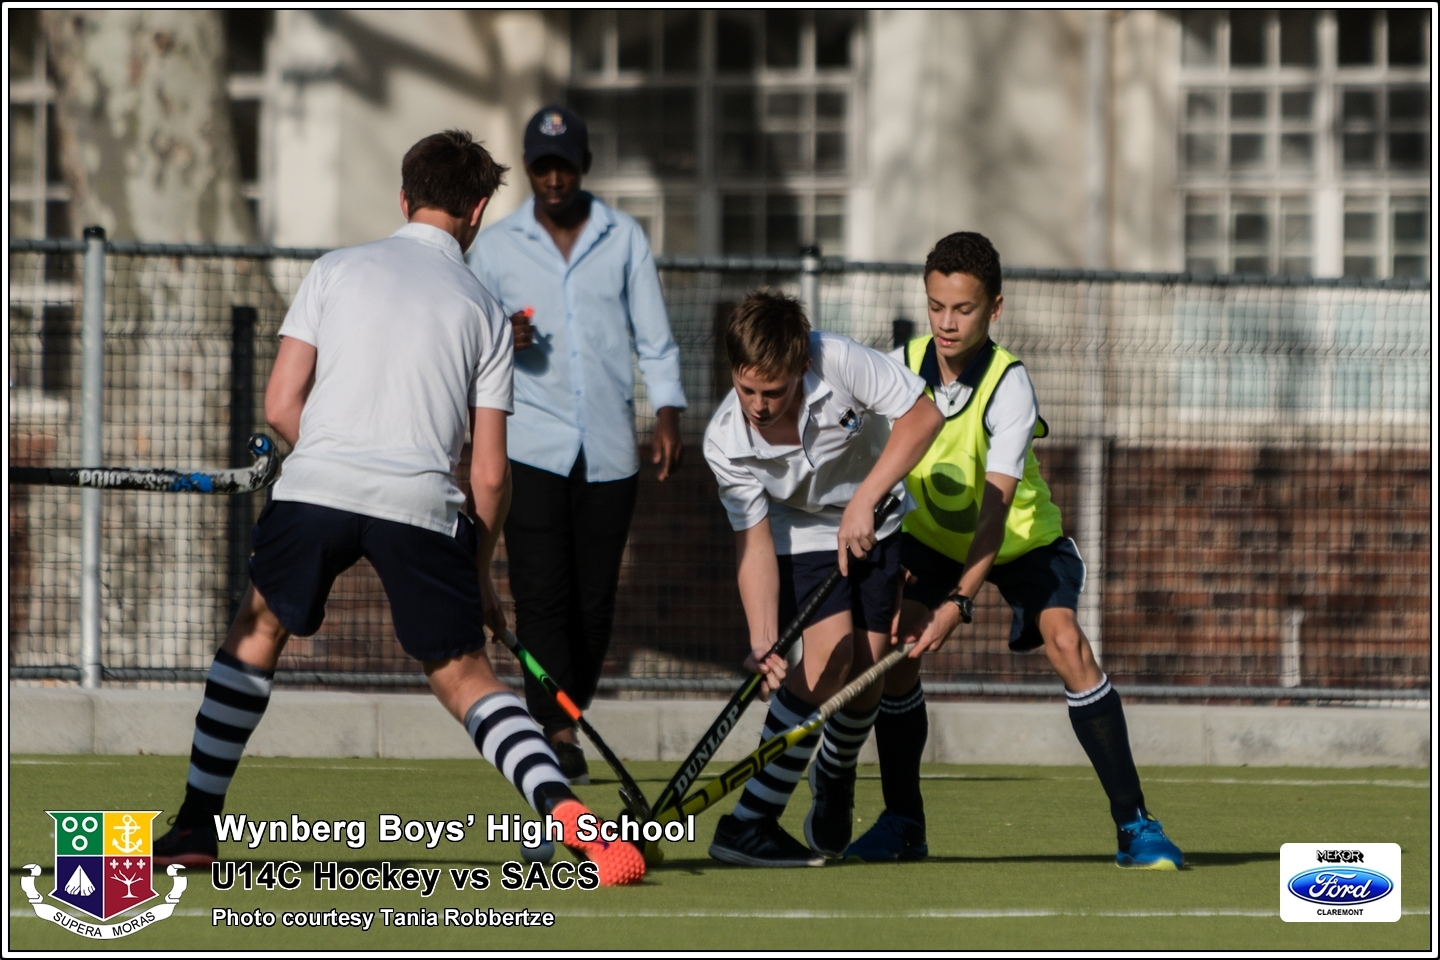 U14C vs SACS, Friday 24 August 2018